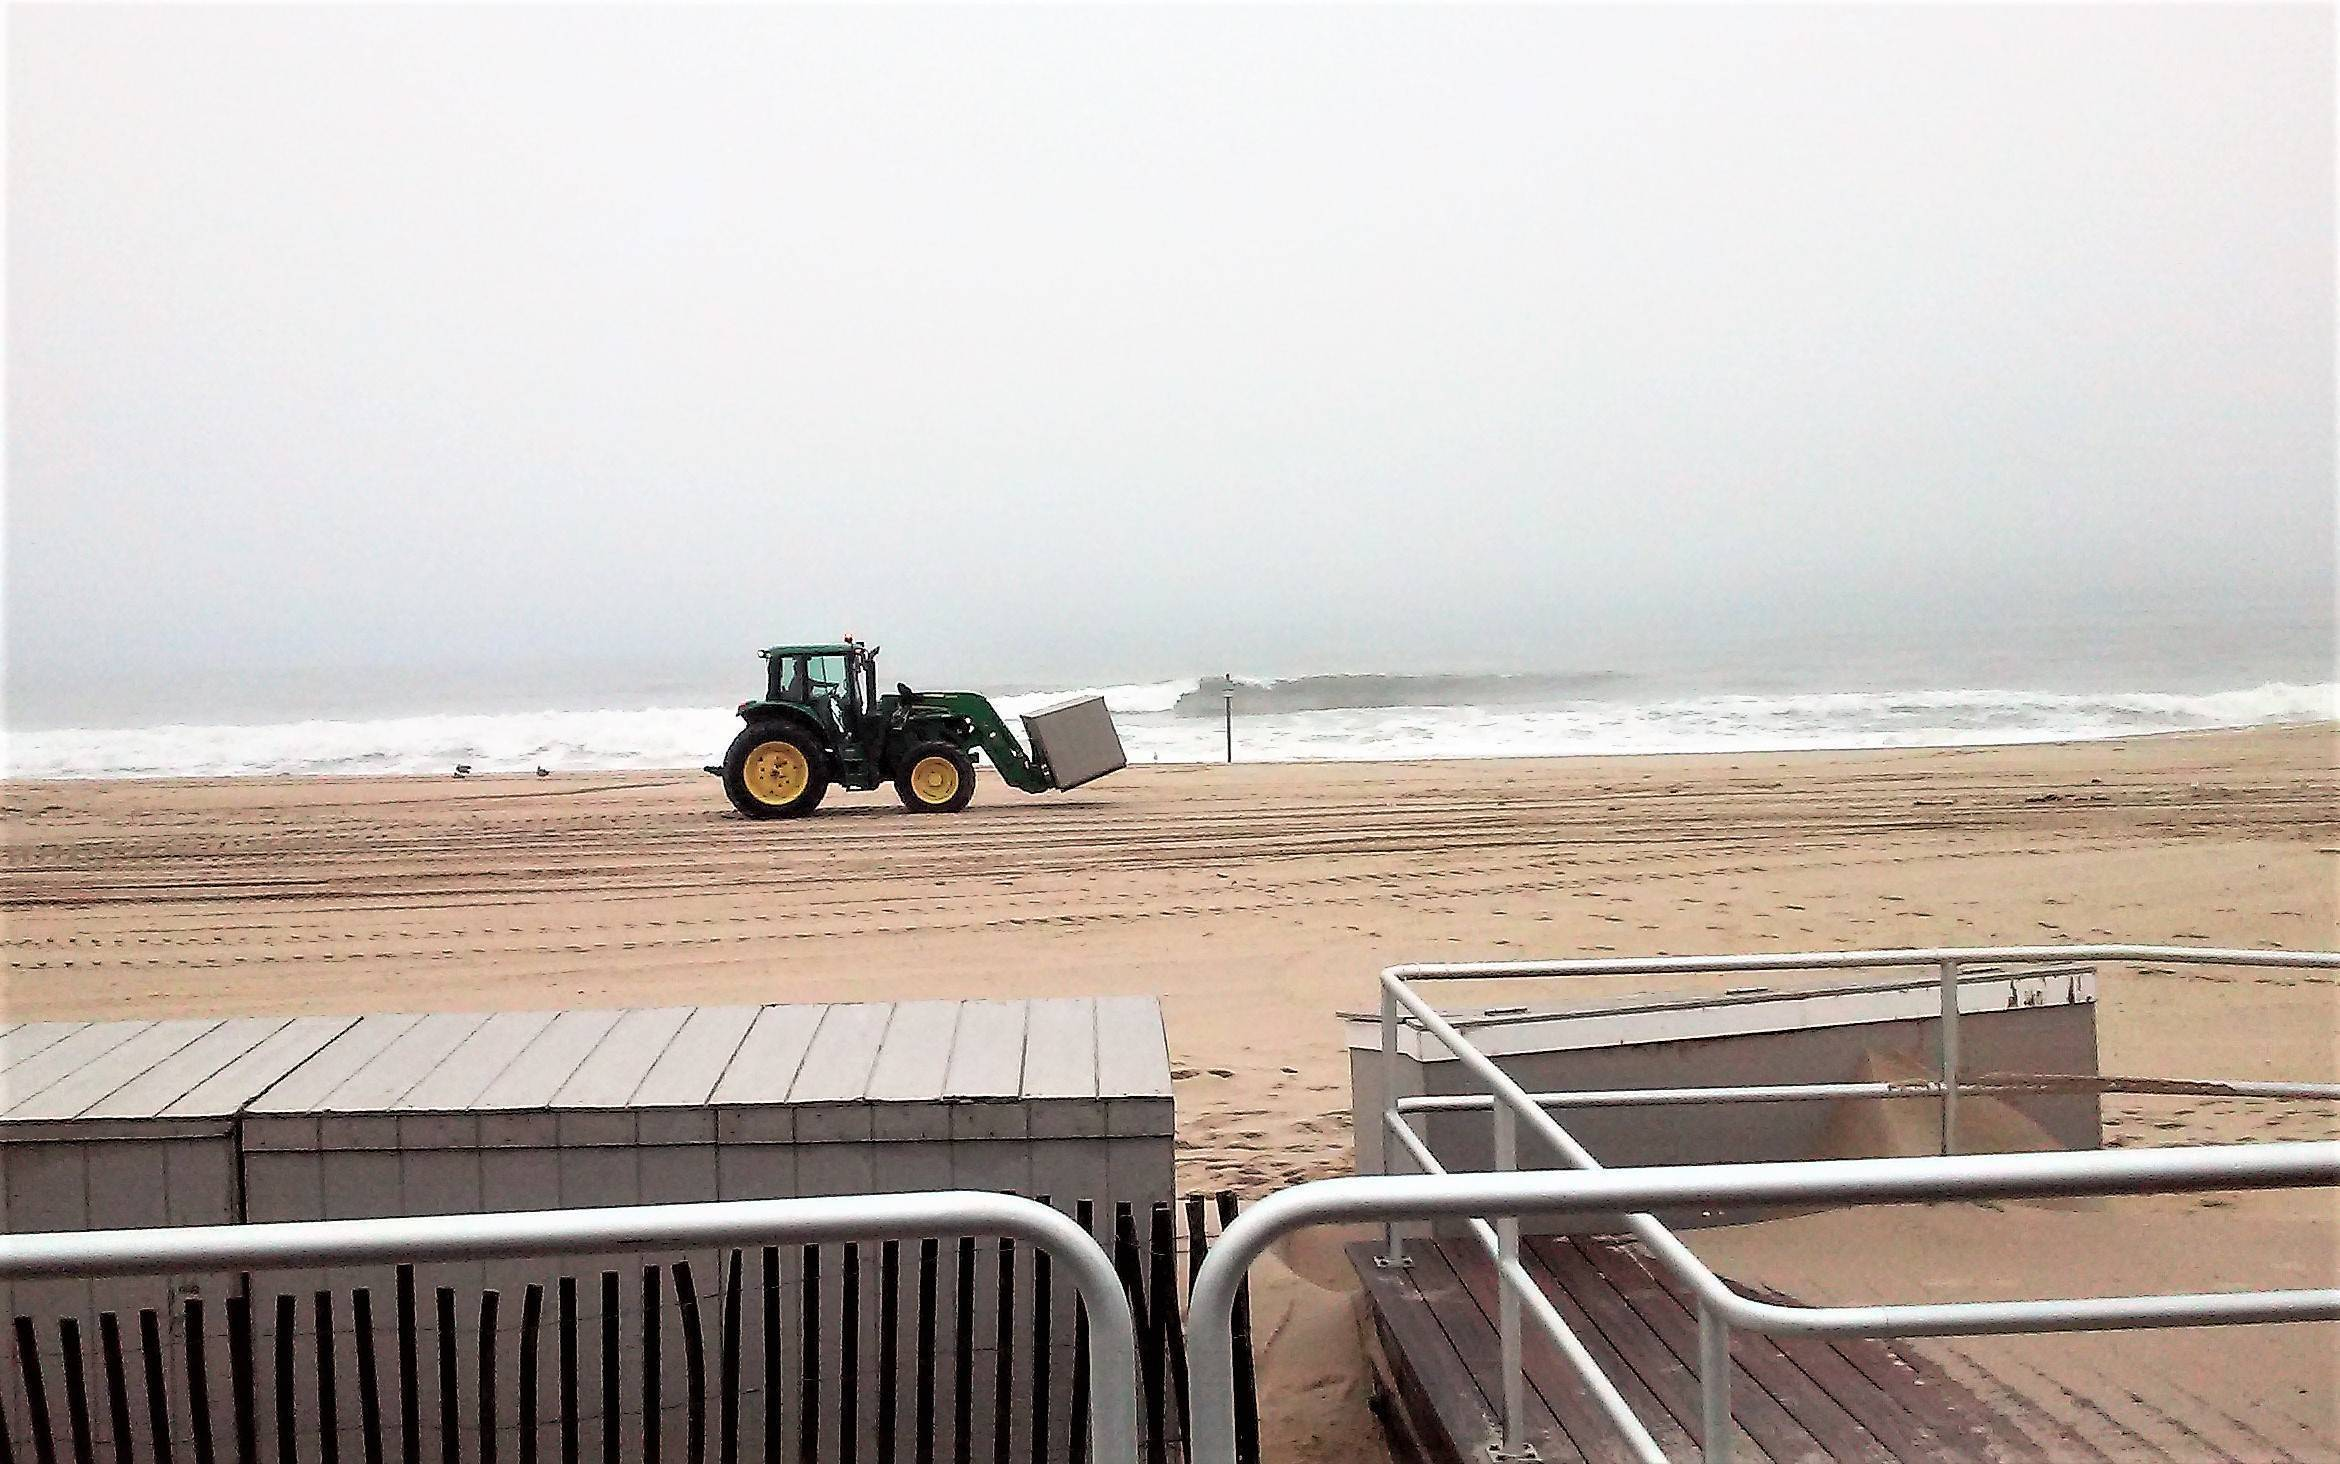 Belmar Prepares for Backhand Punch of Hurricane Florence